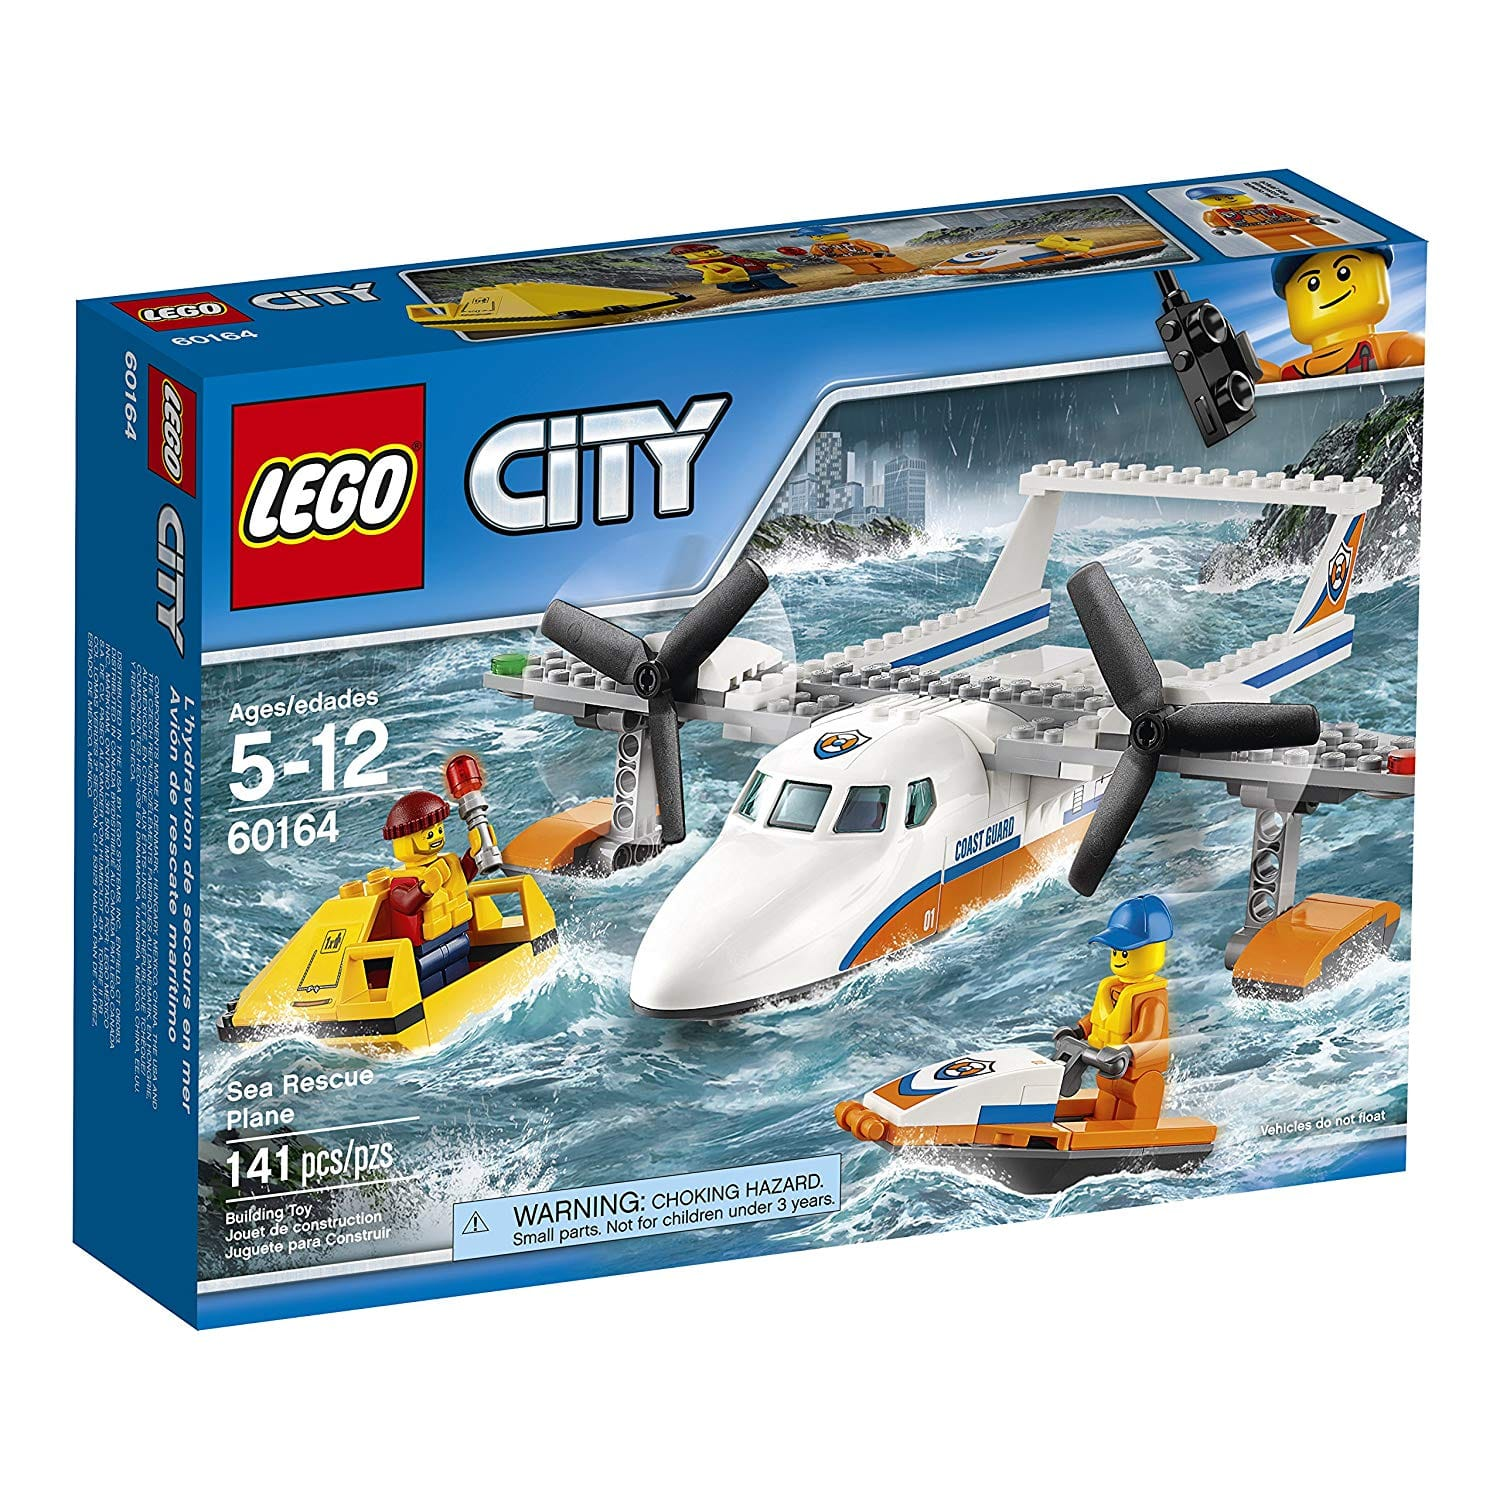 $11.99 - LEGO City Coast Guard Sea Rescue Plane 60164 Building Kit (141 Piece)